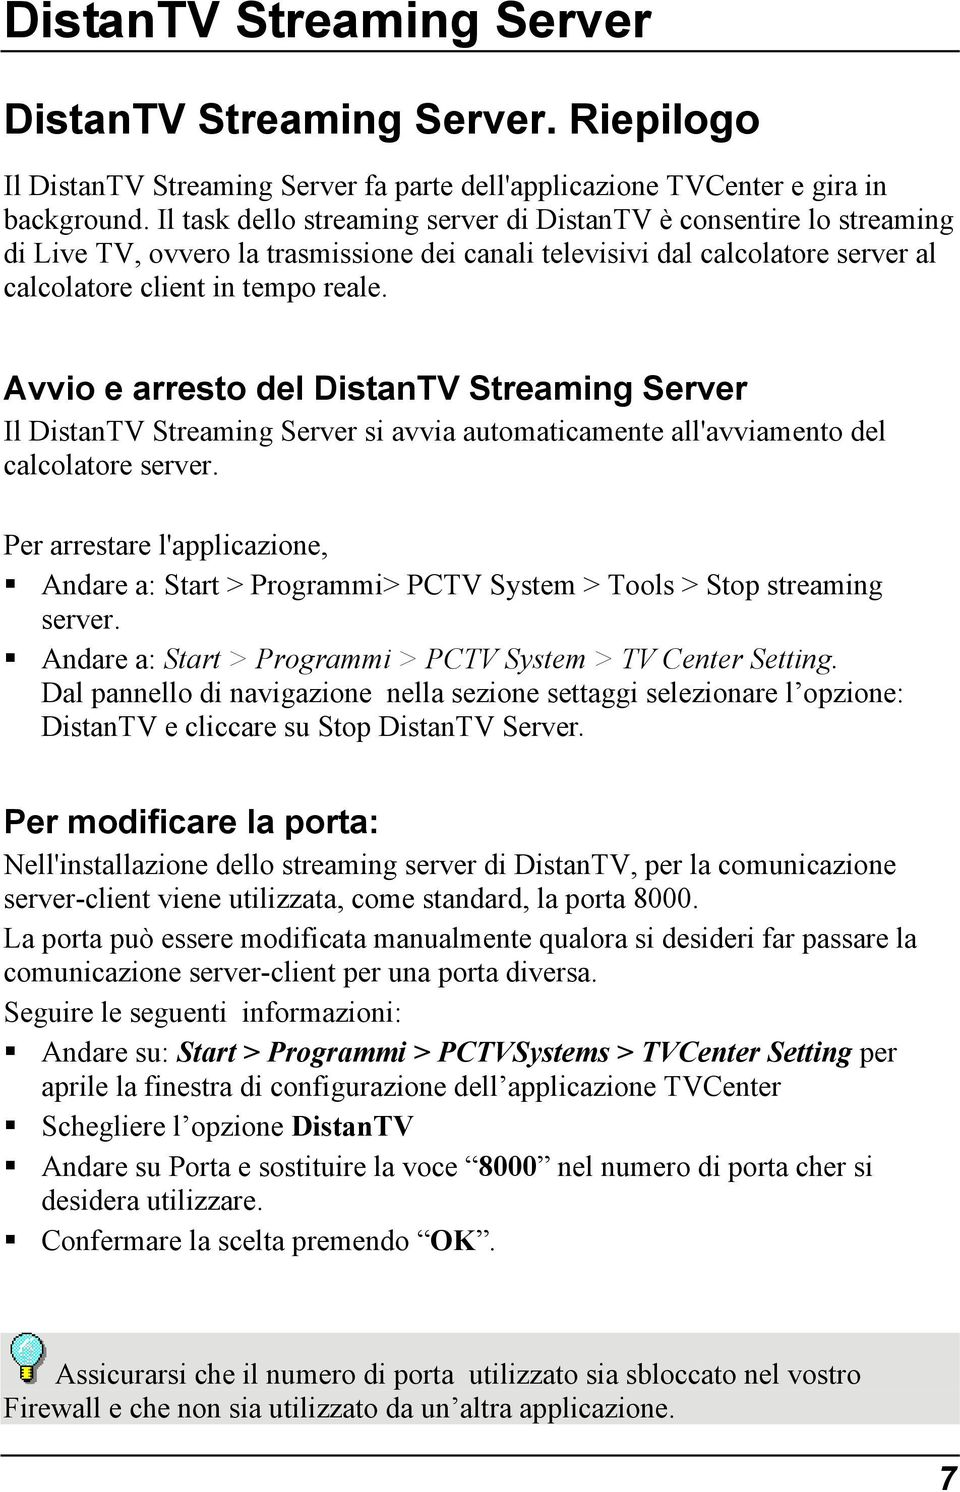 Avvio e arresto del DistanTV Streaming Server Il DistanTV Streaming Server si avvia automaticamente all'avviamento del calcolatore server.